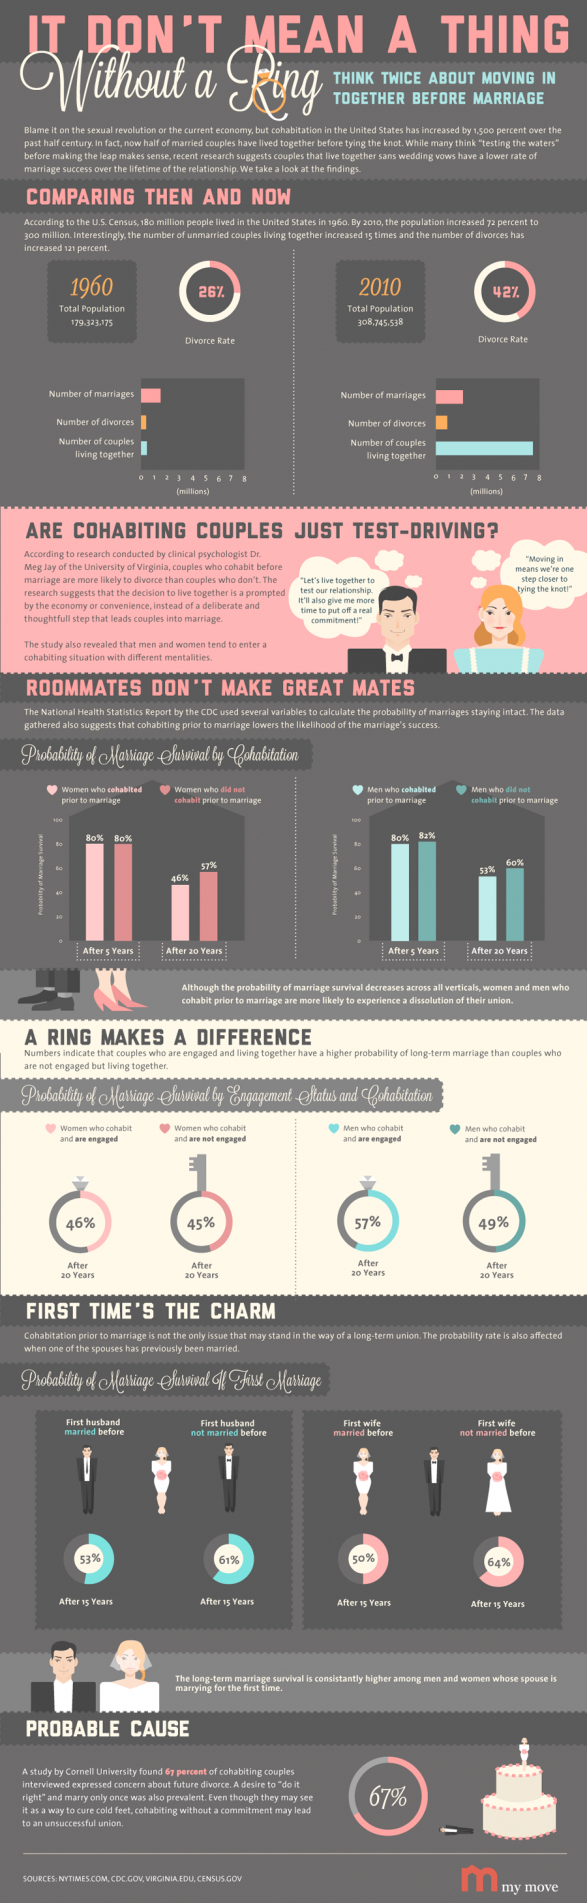 CoHabiting-Couples-infographic